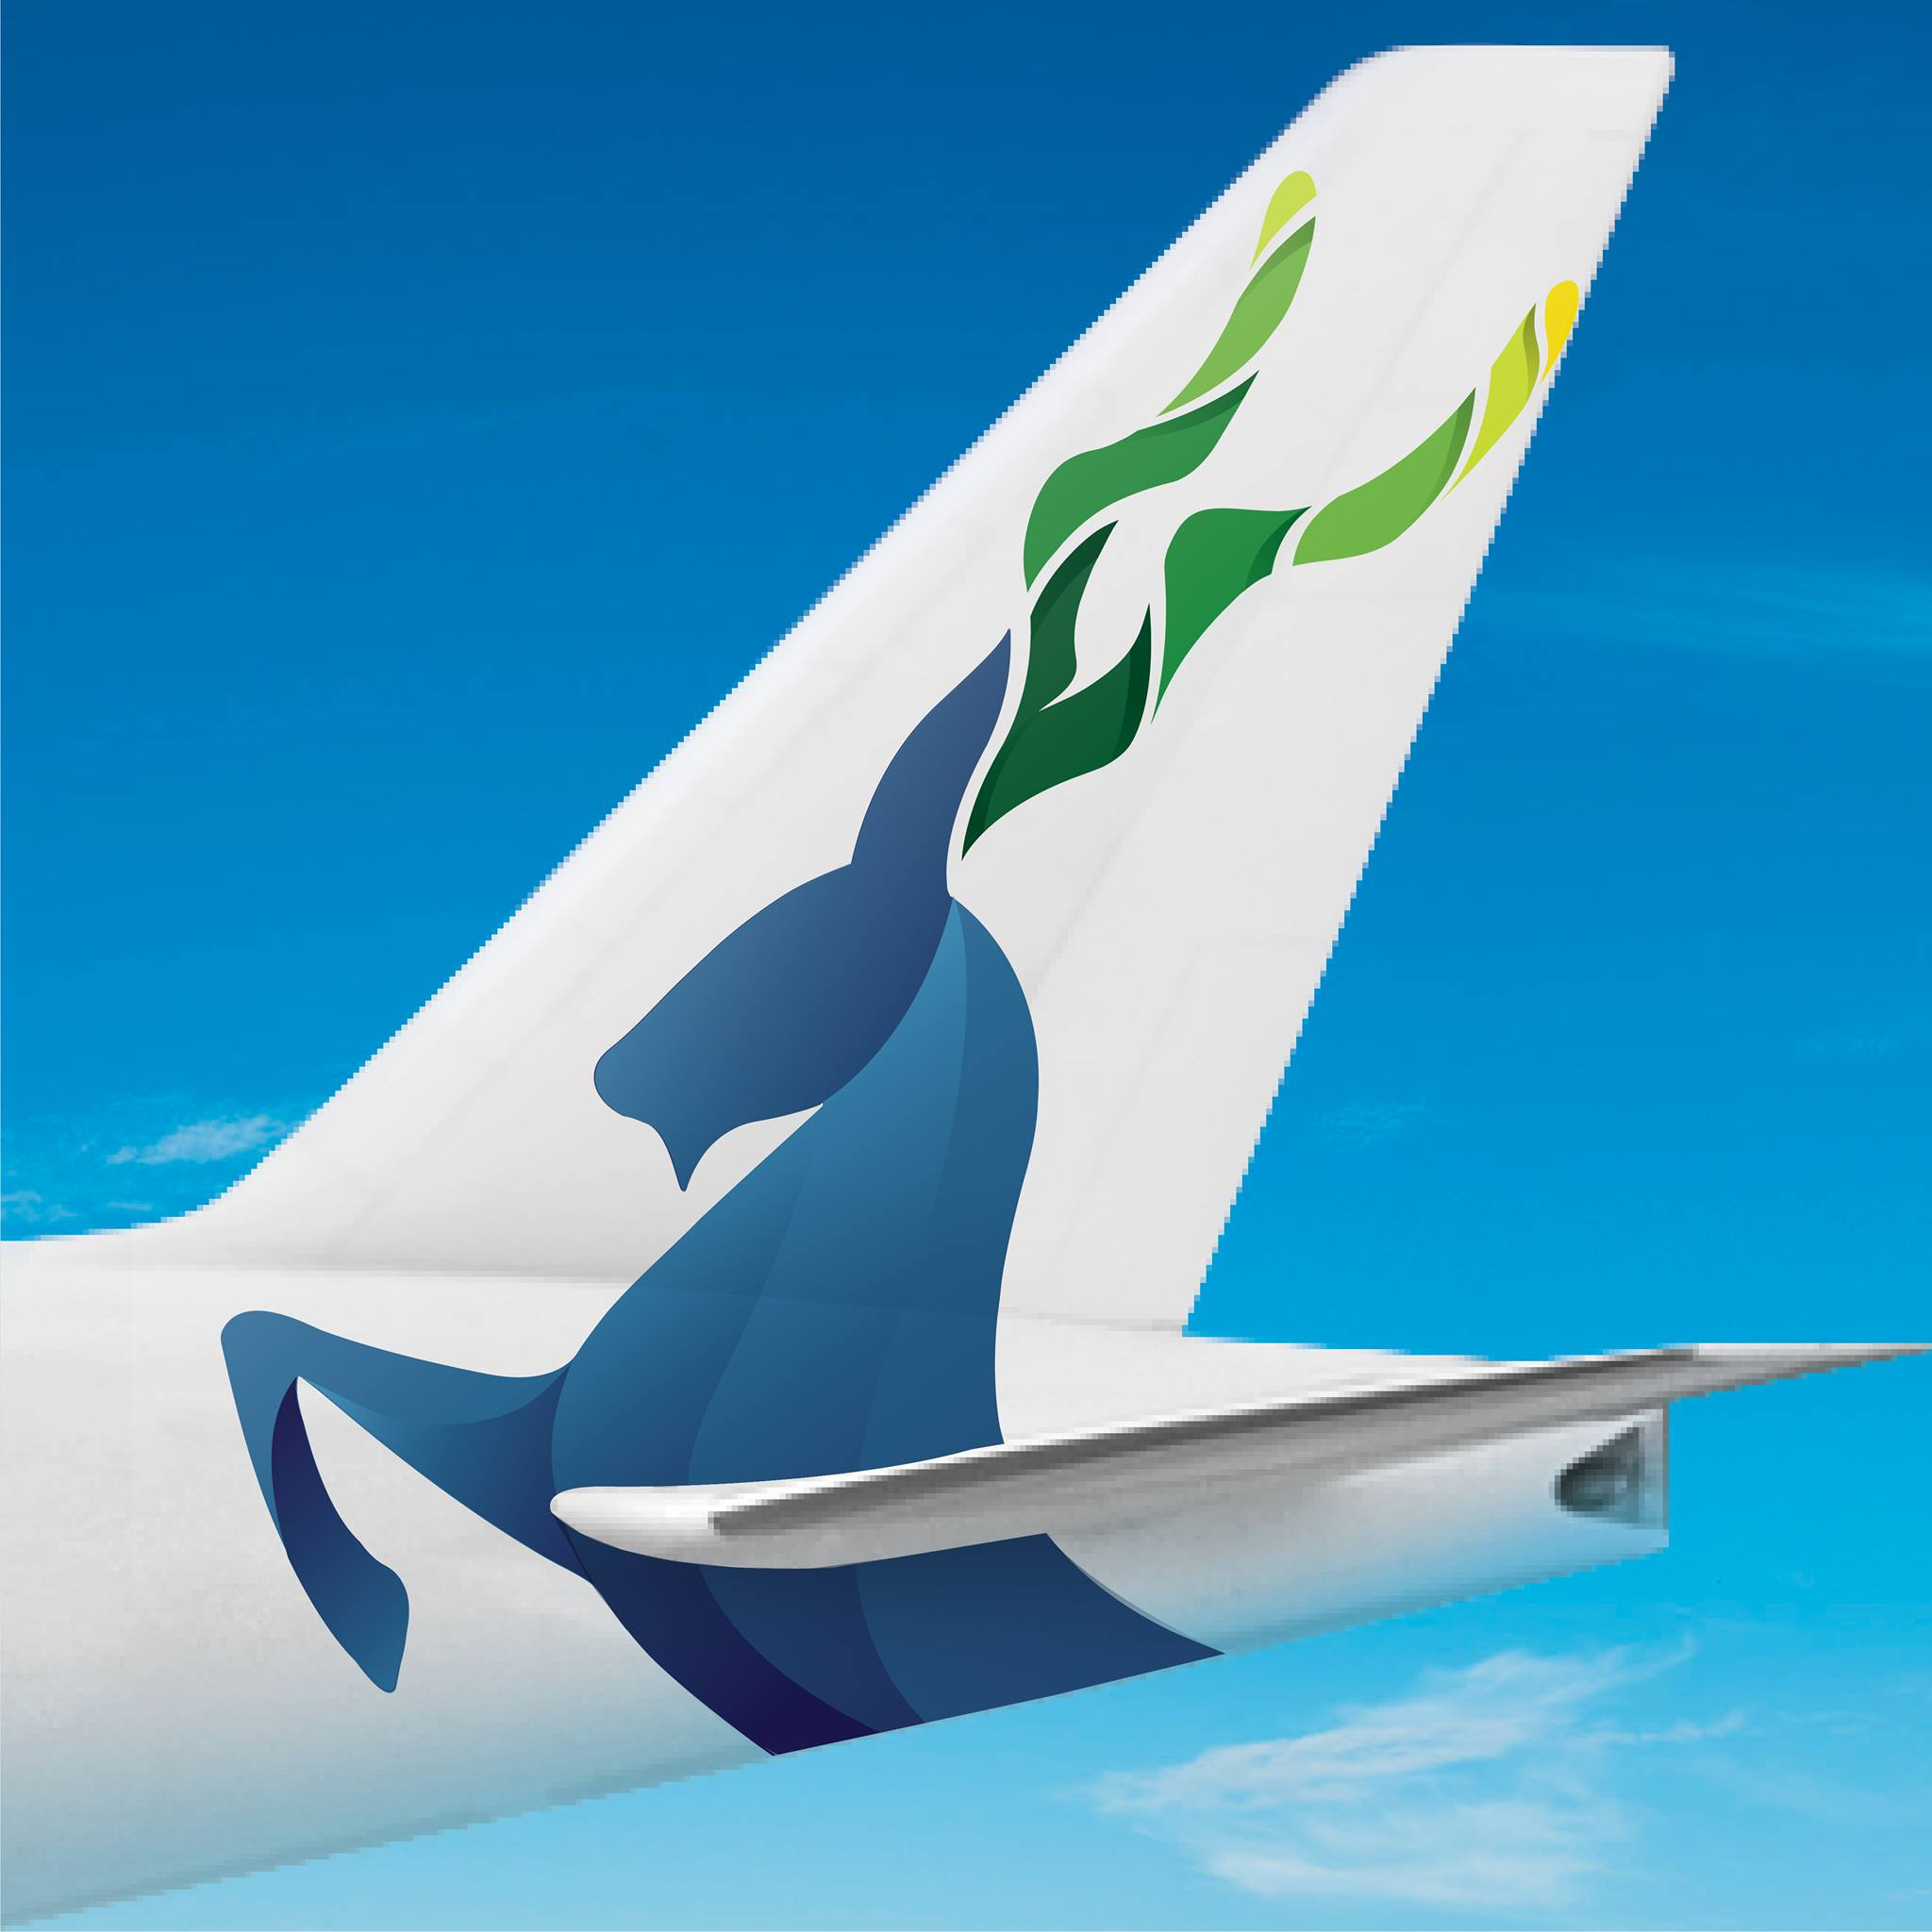 Pakistan international airlines introduces a new livery for Latest design news